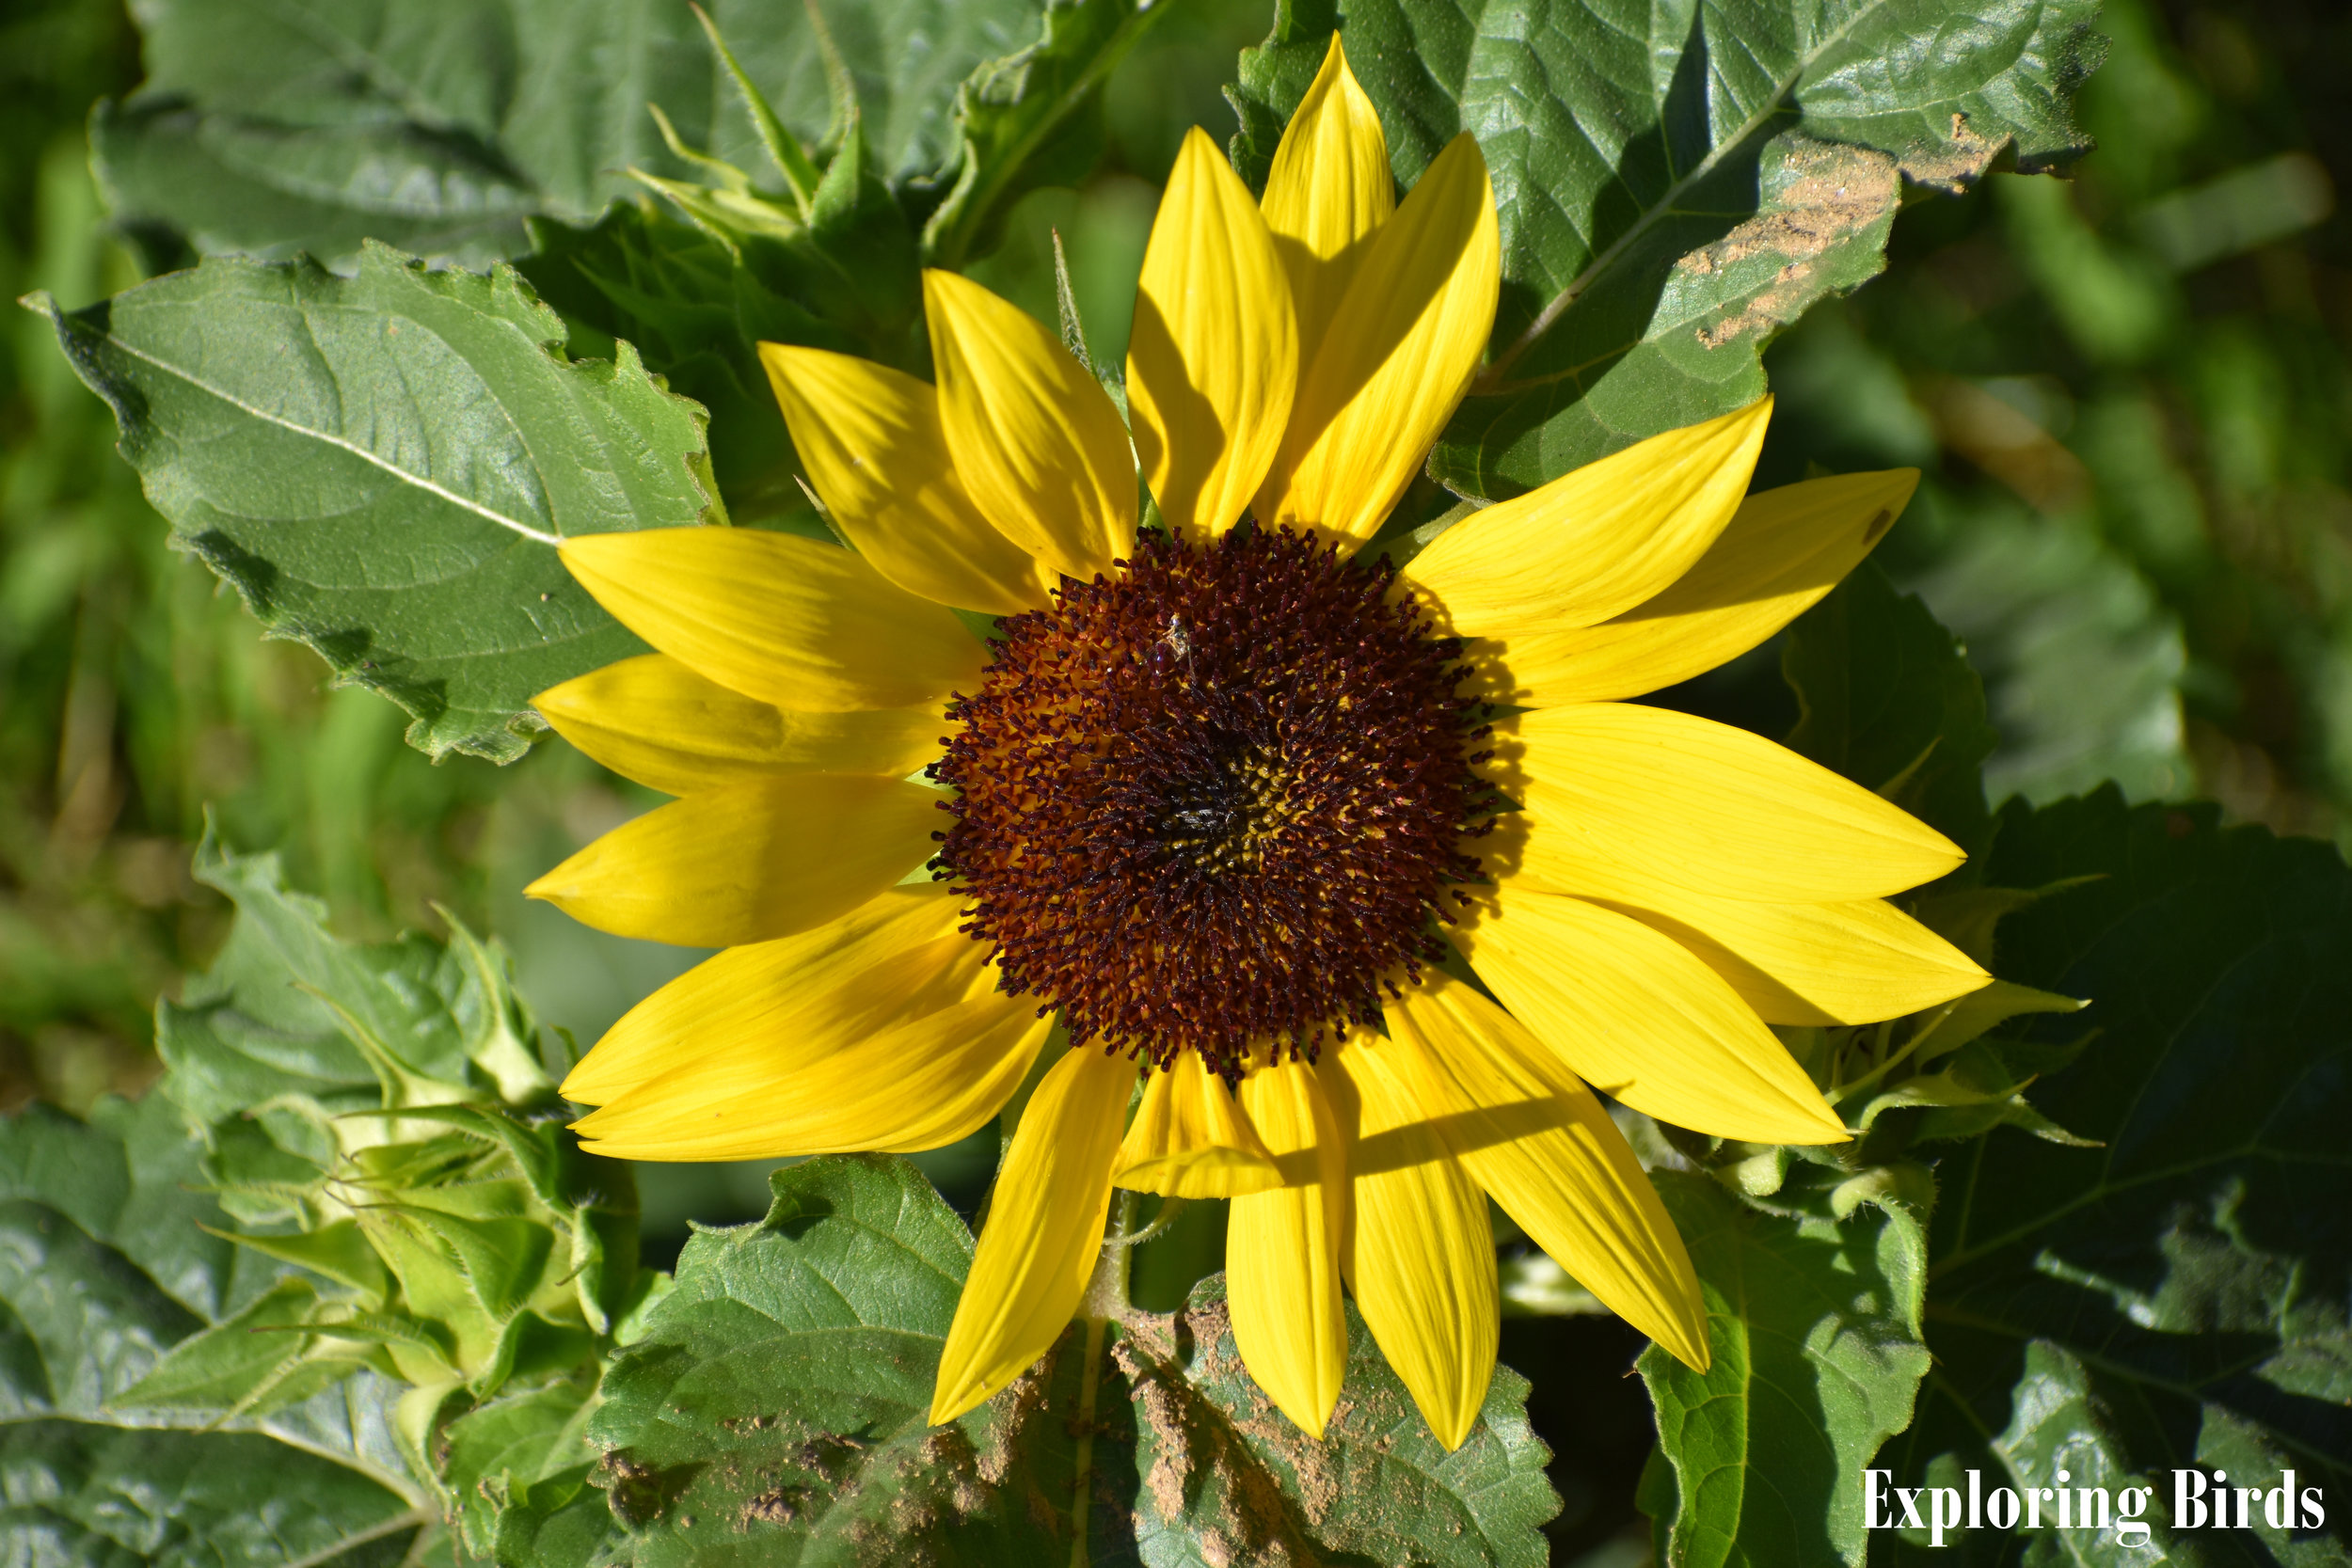 Sunflower is the flower that attracts the most birds